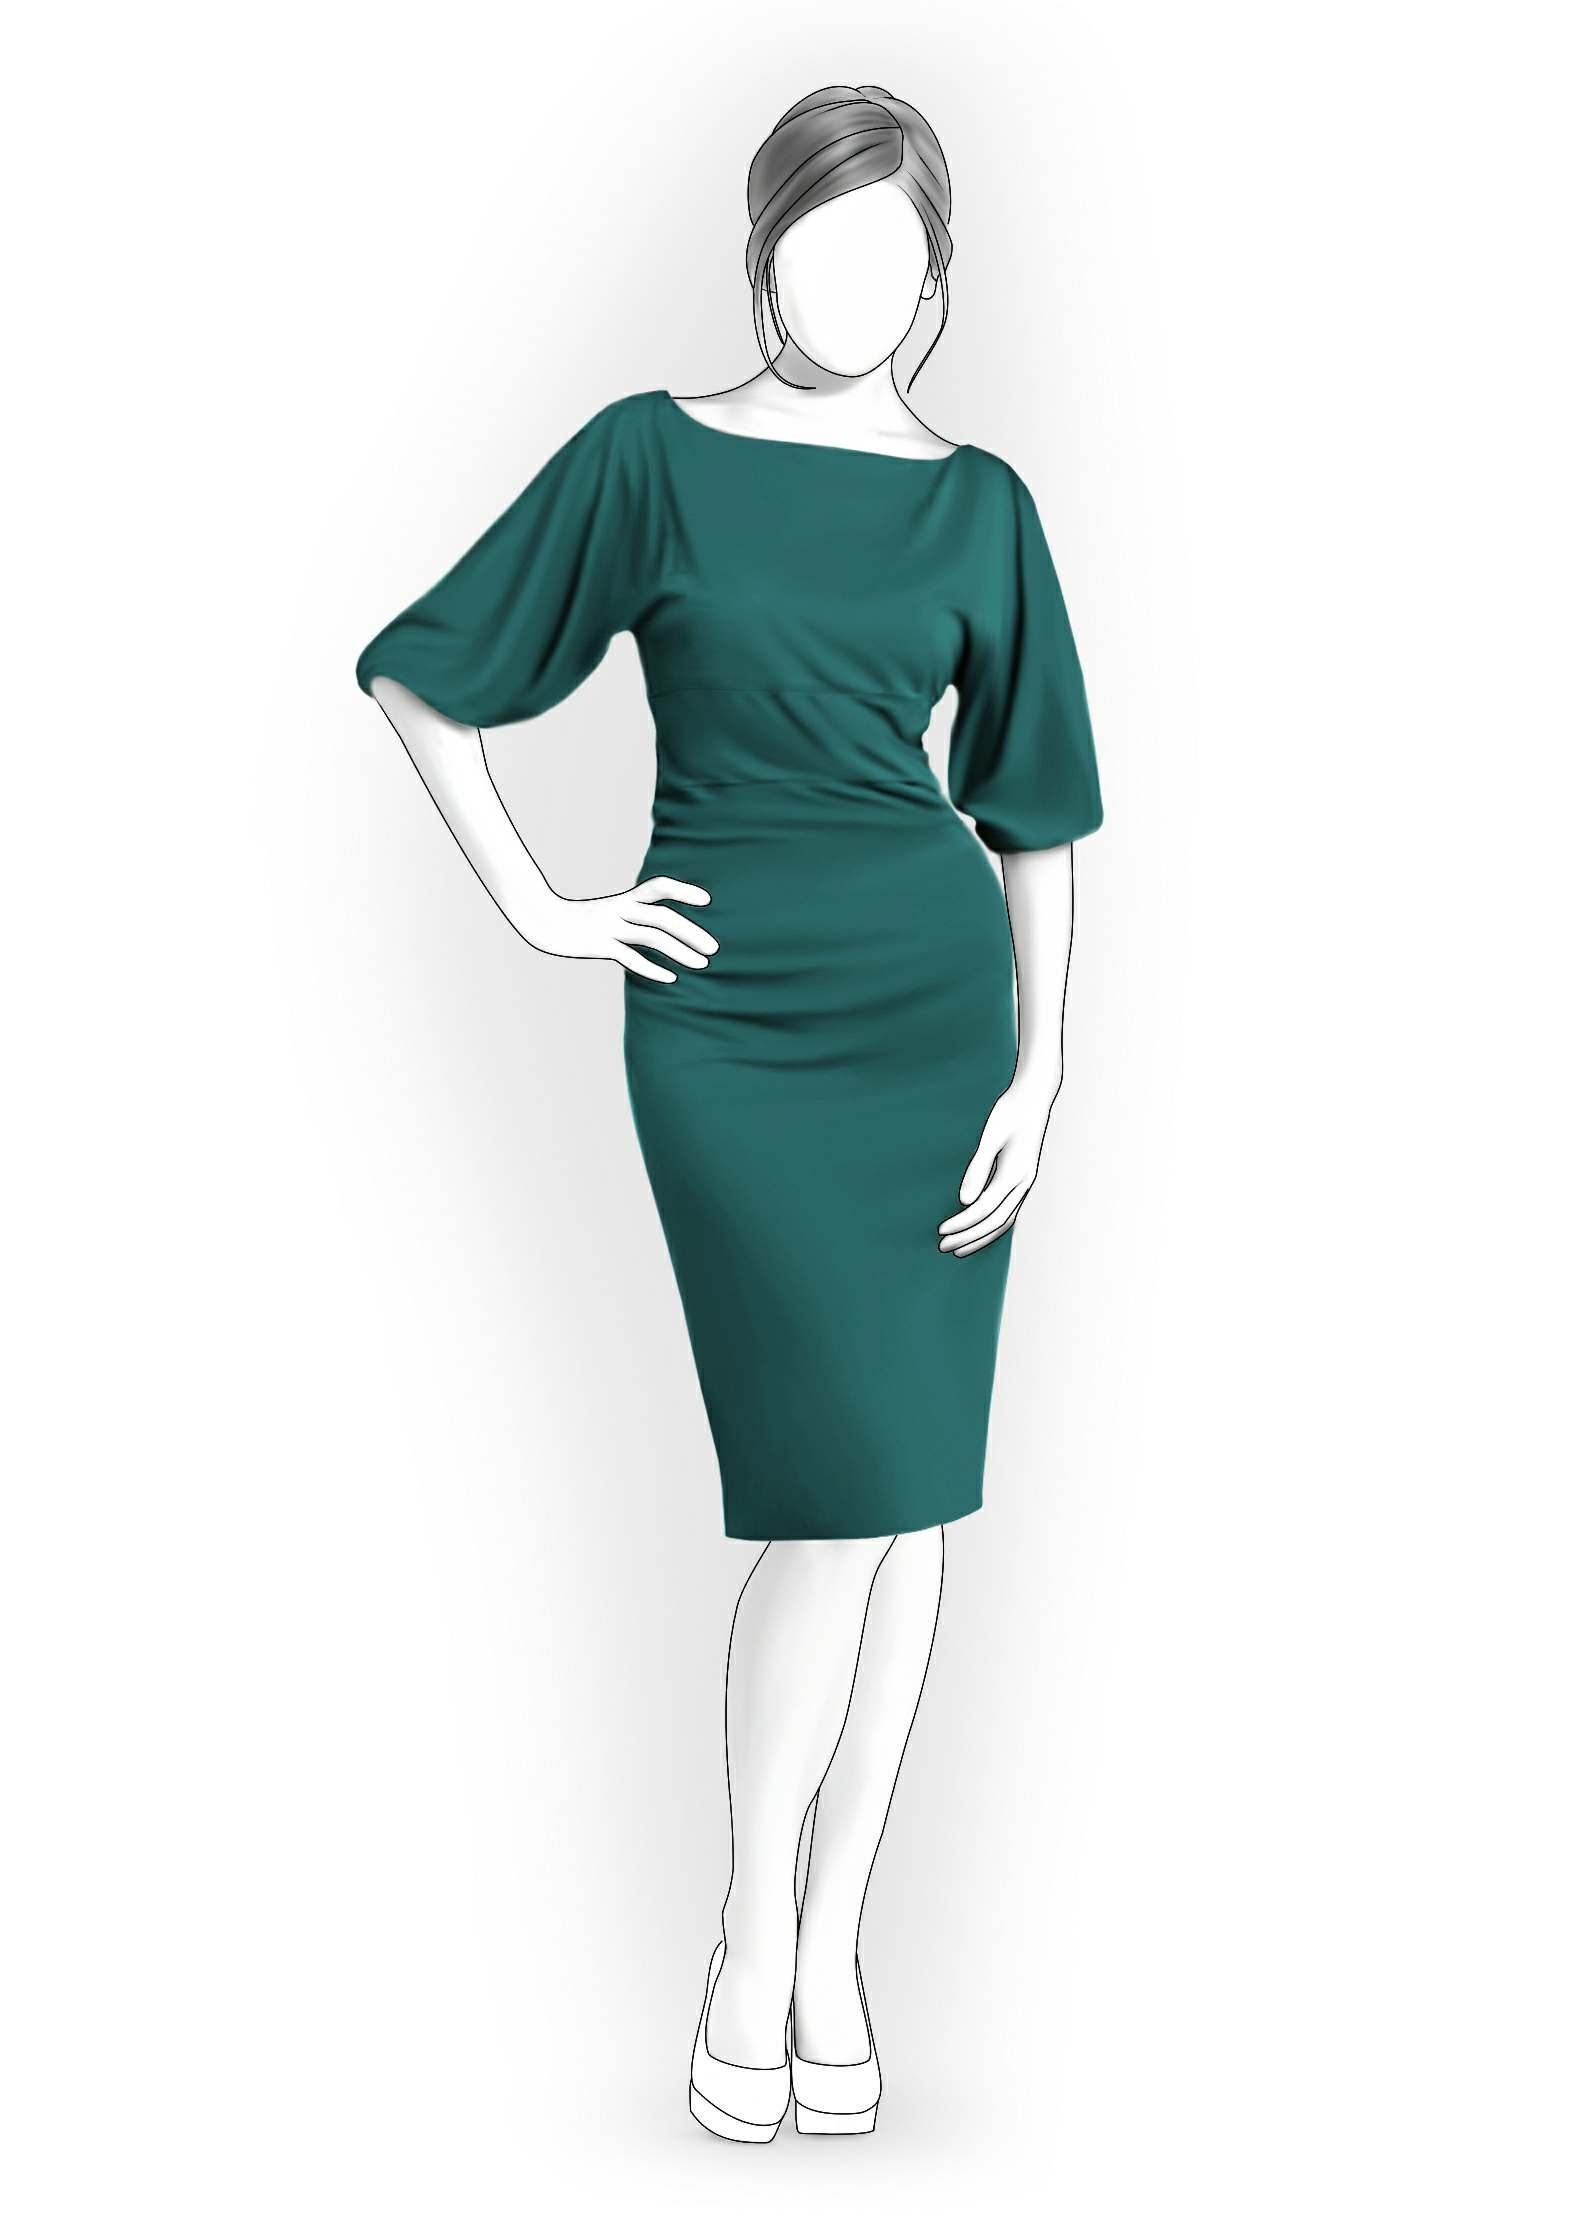 Dress With Wide Sleeves - Sewing Pattern #4079. Made-to-measure sewing pattern from Lekala with free online download.